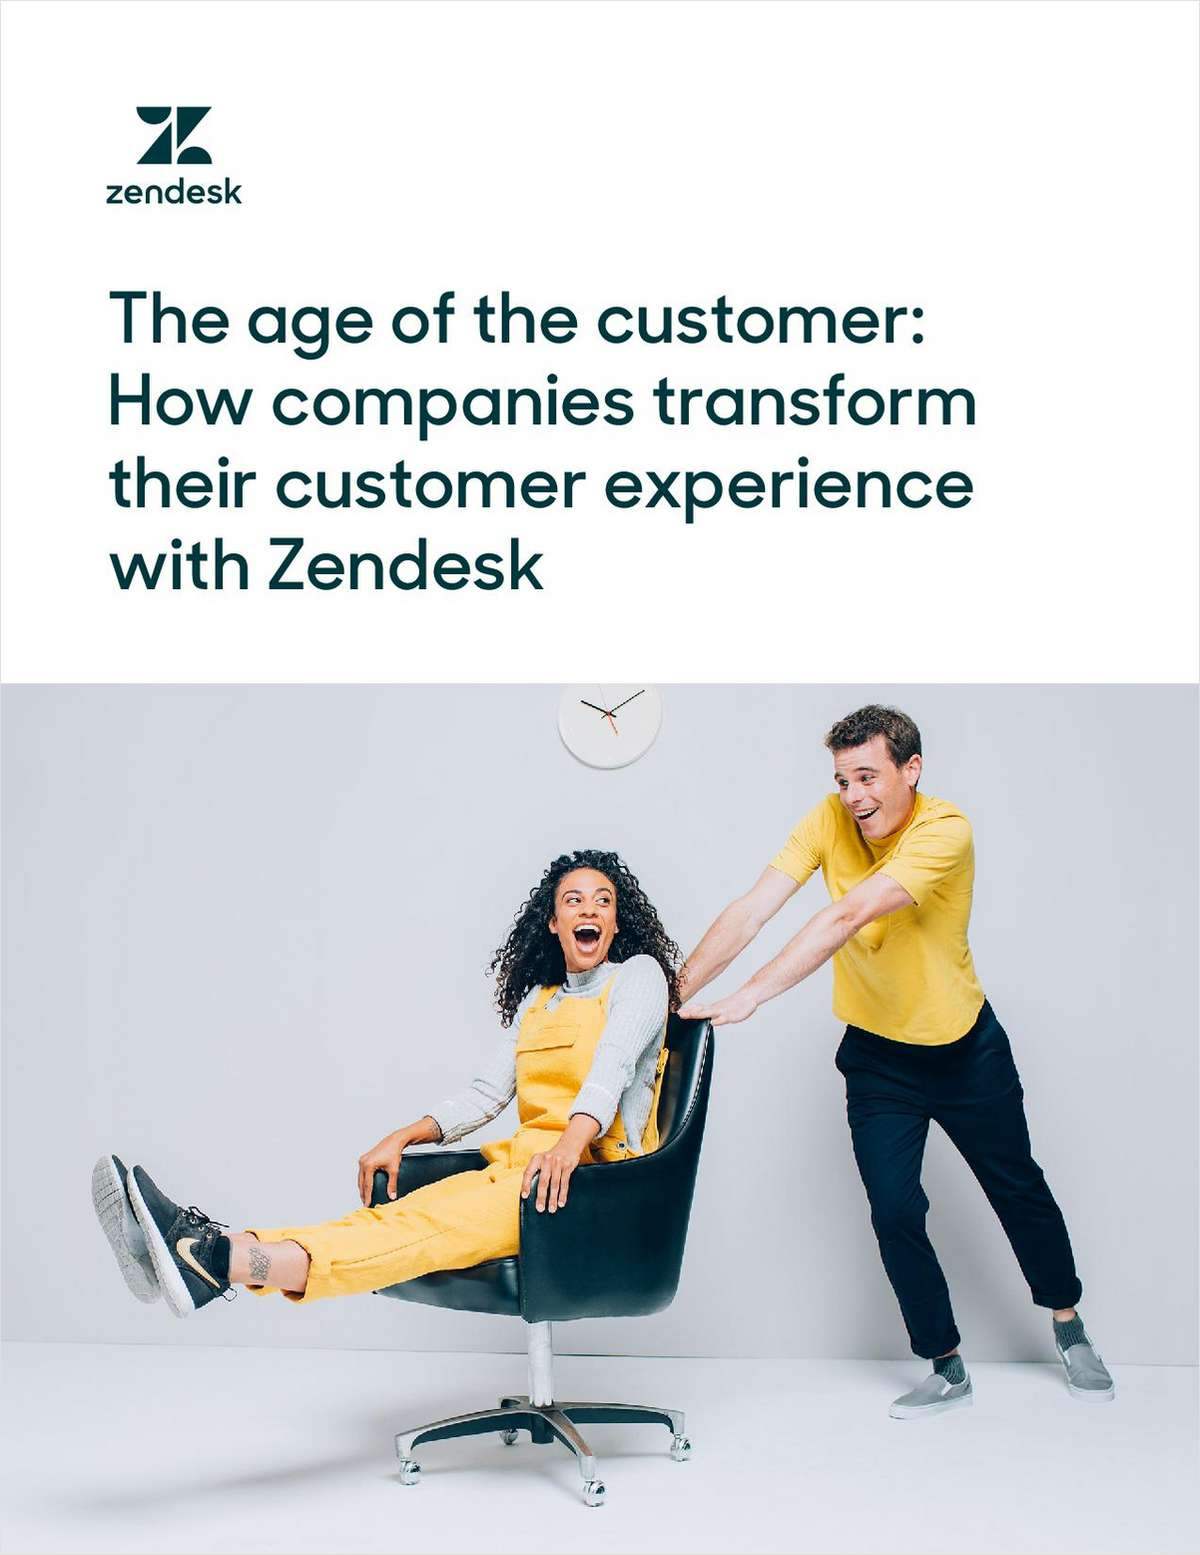 The Age of the Customer: How Companies Transform their Customer Experience with Zendesk